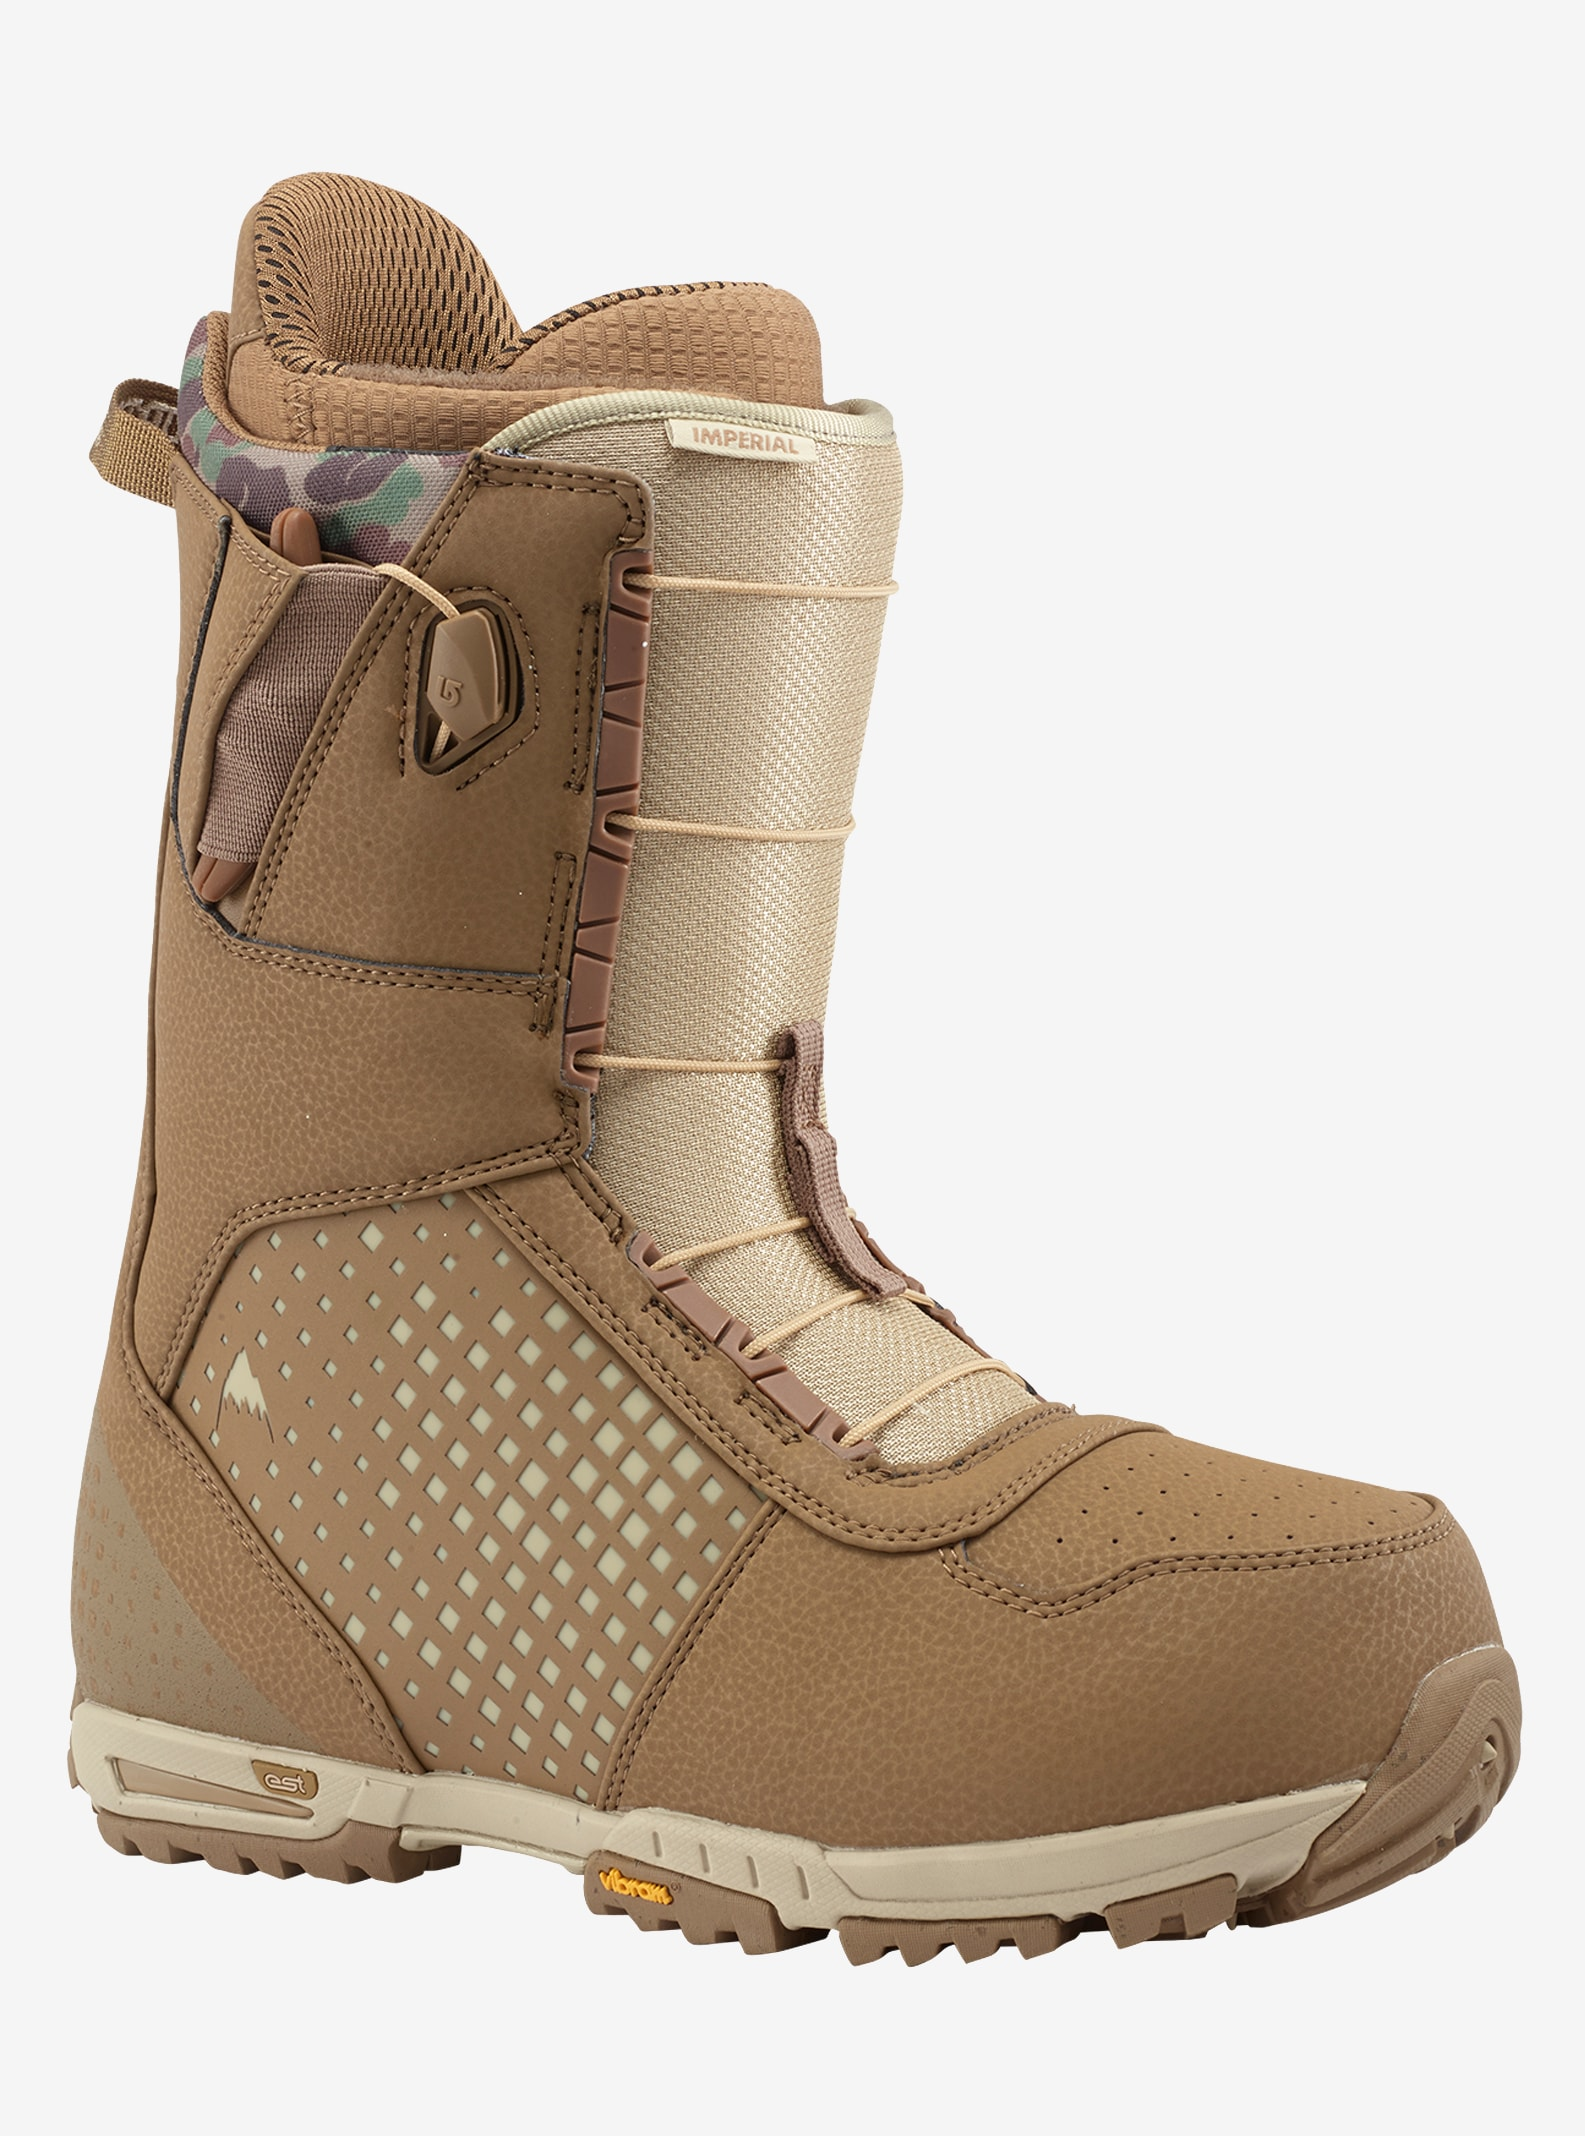 Men's Burton Imperial Snowboard Boot shown in Desert